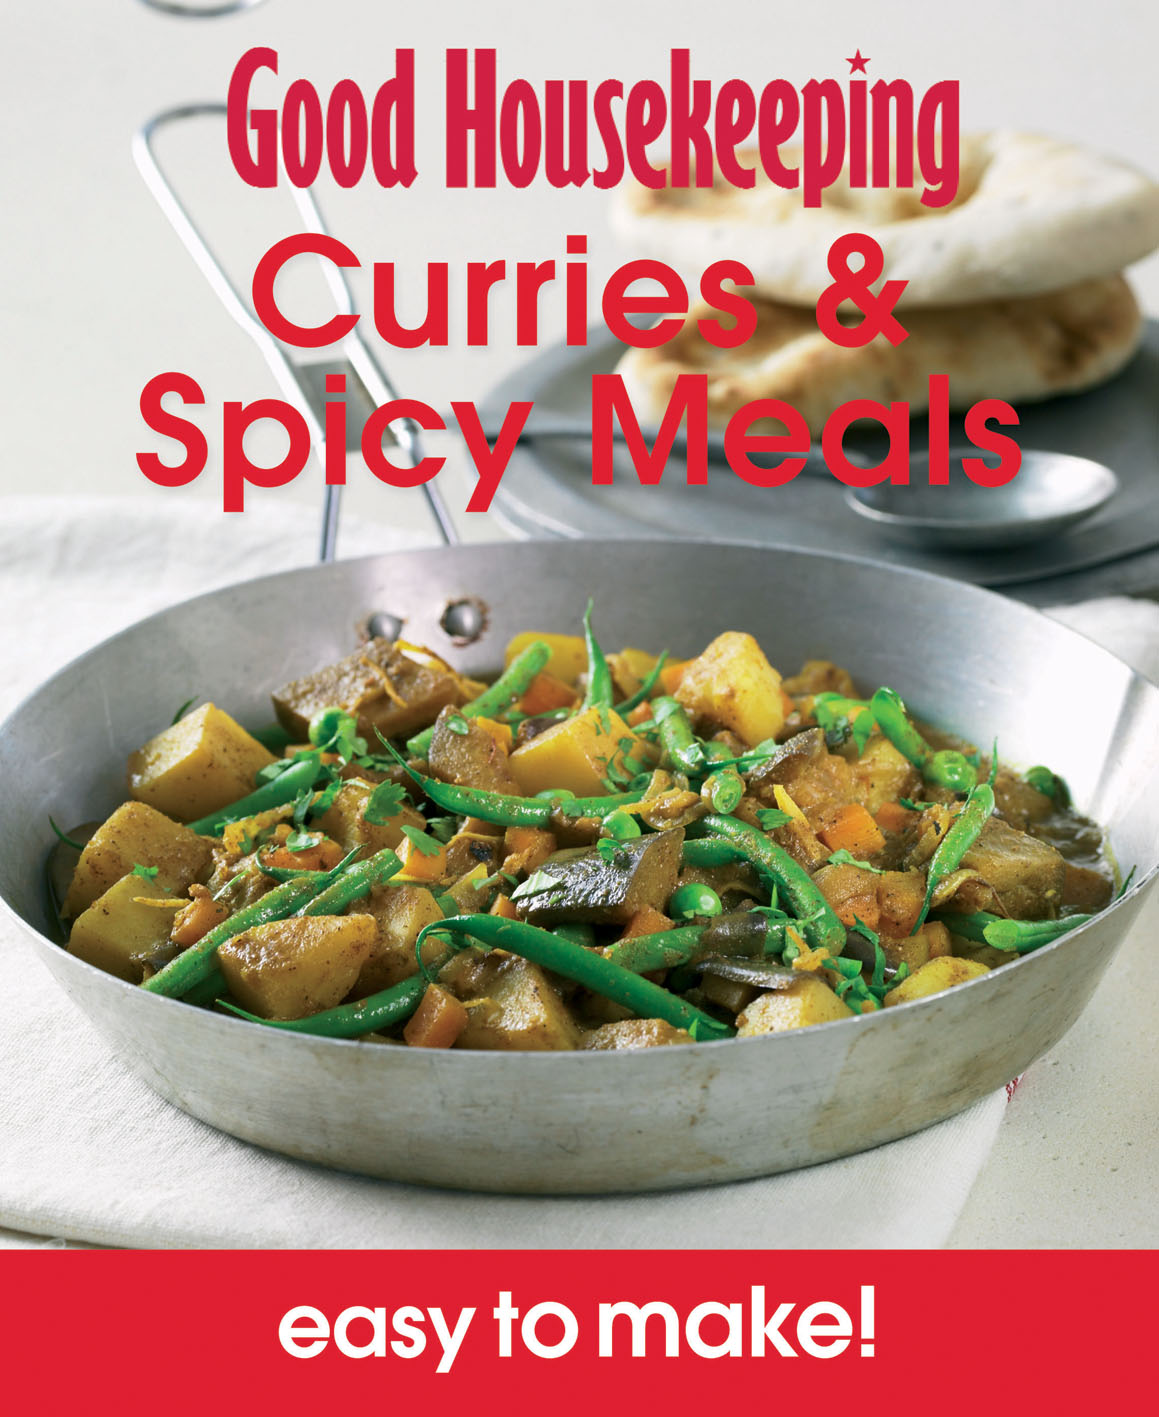 Good Housekeeping Easy to Make! Curries & Spicy Meals